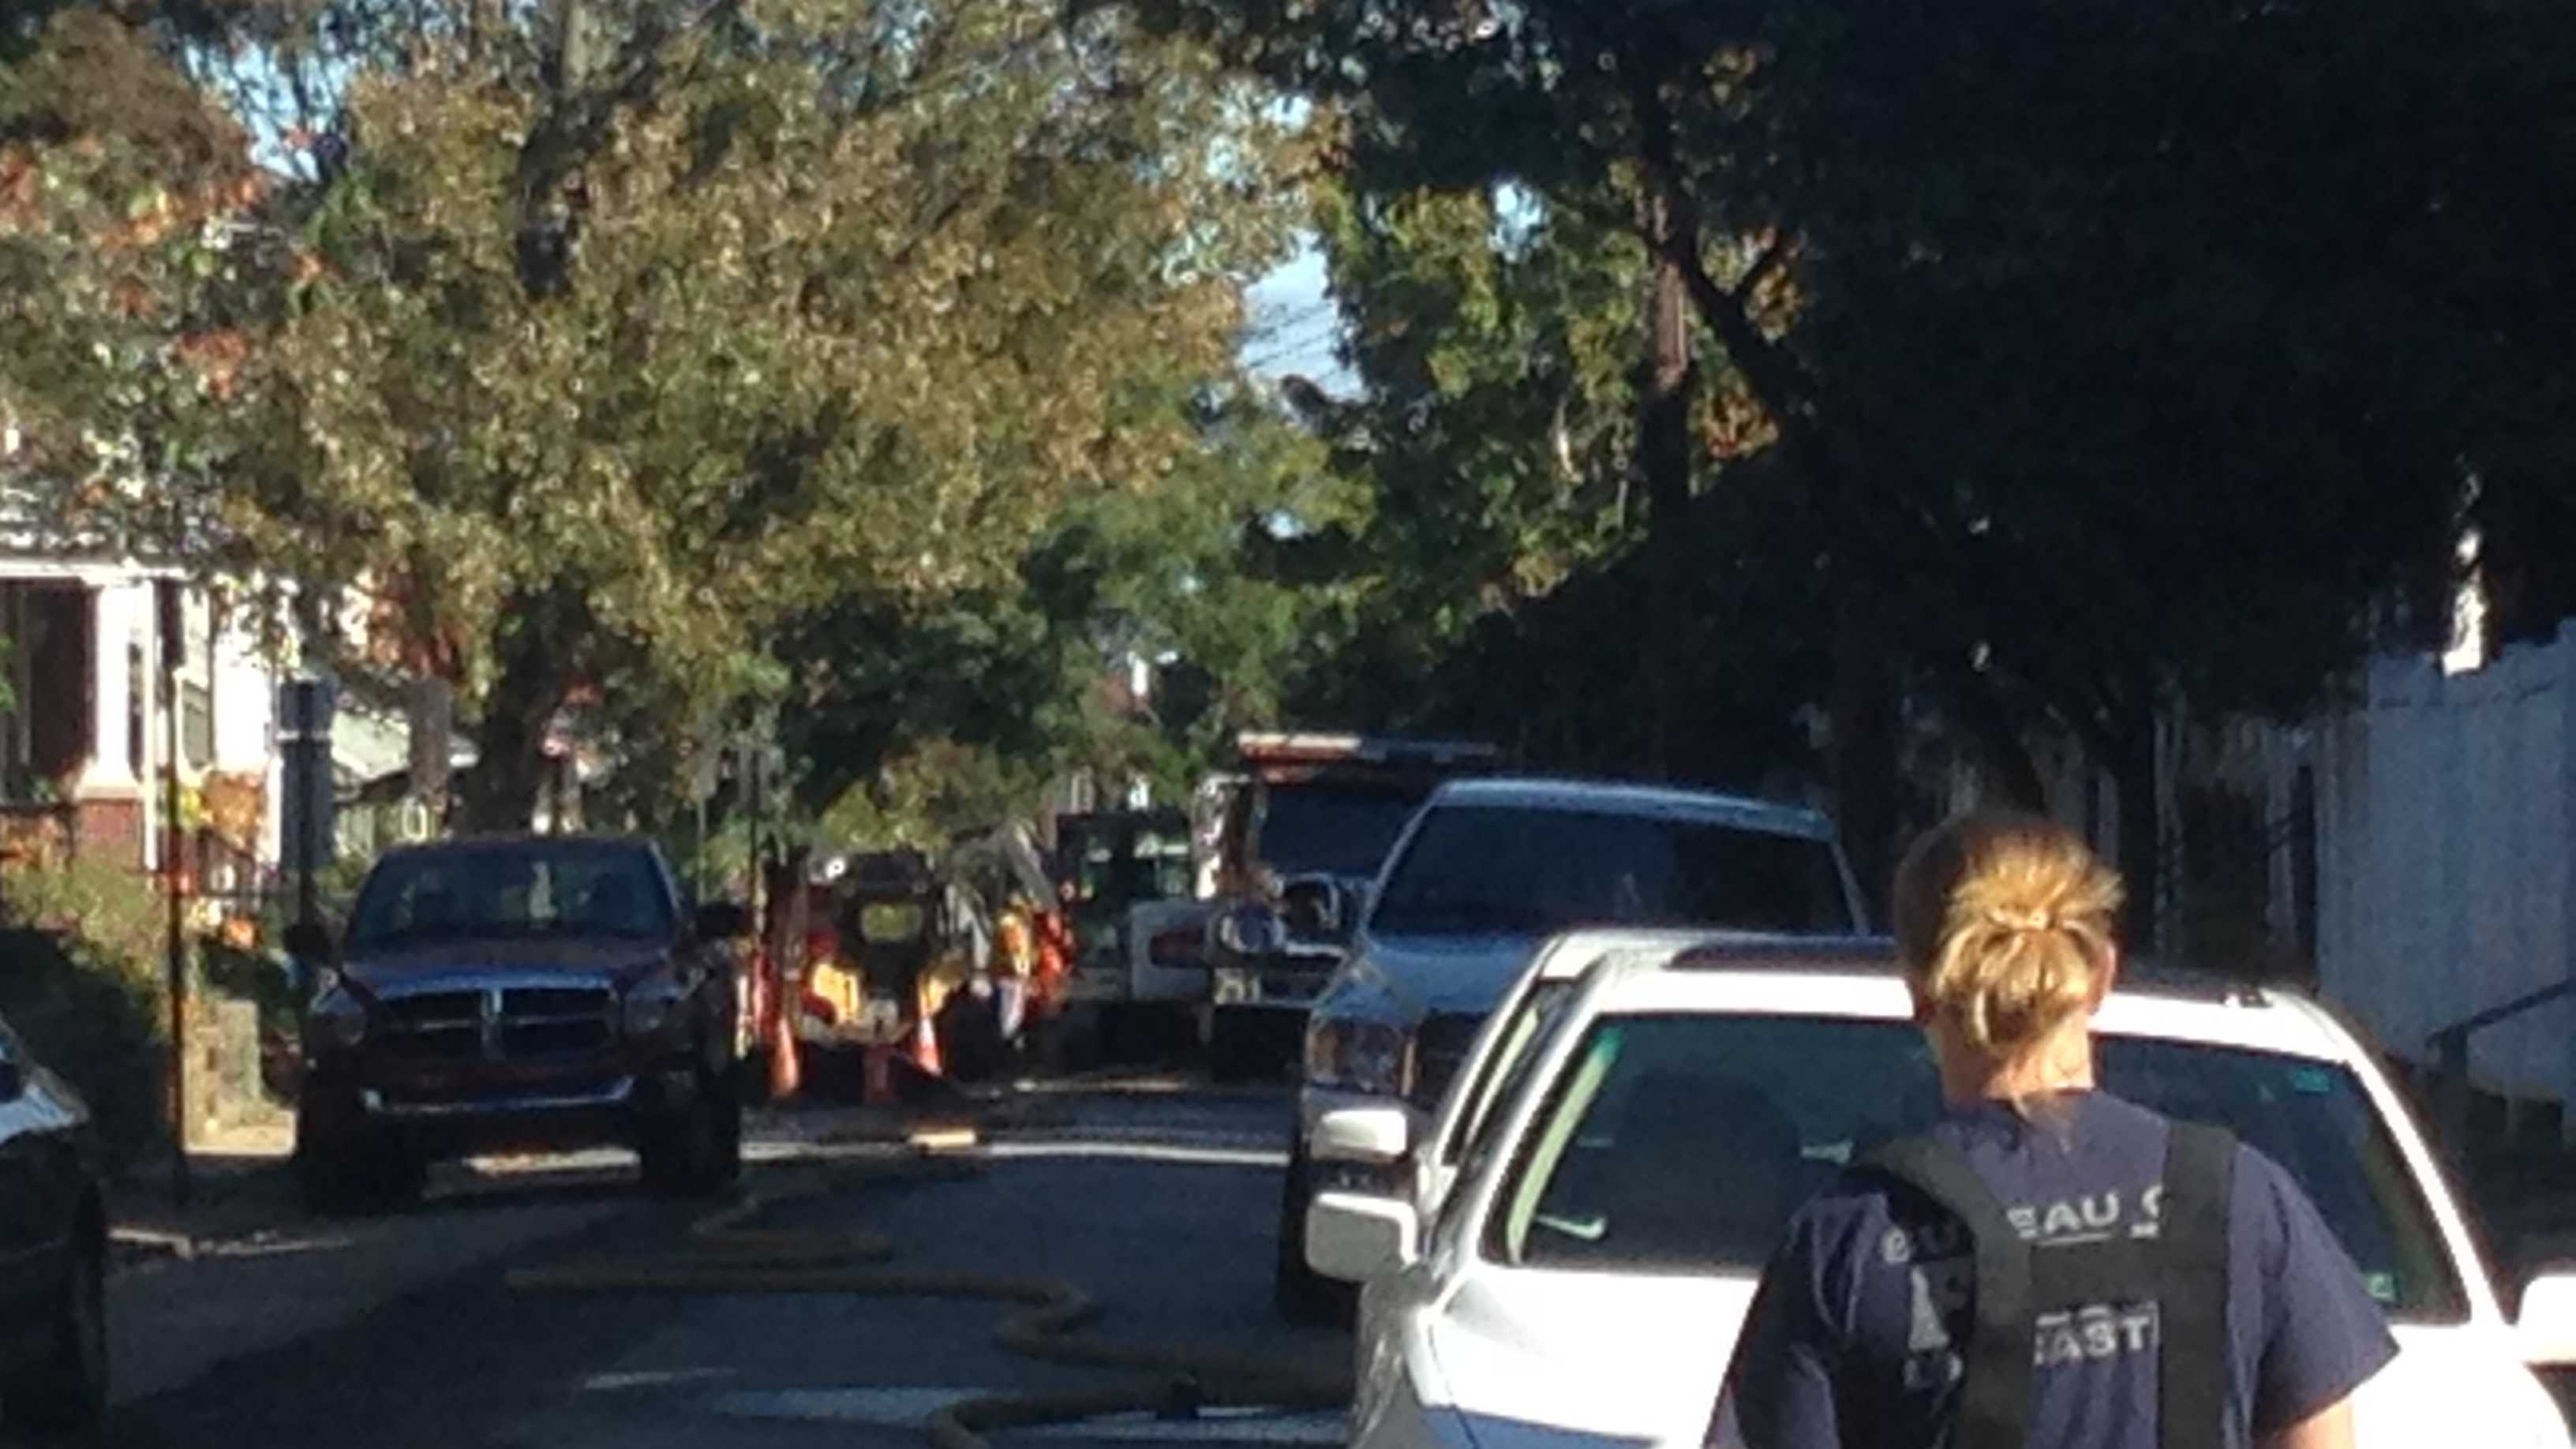 Businesses and residences were evacuated Monday morning in Lancaster due to a gas leak.